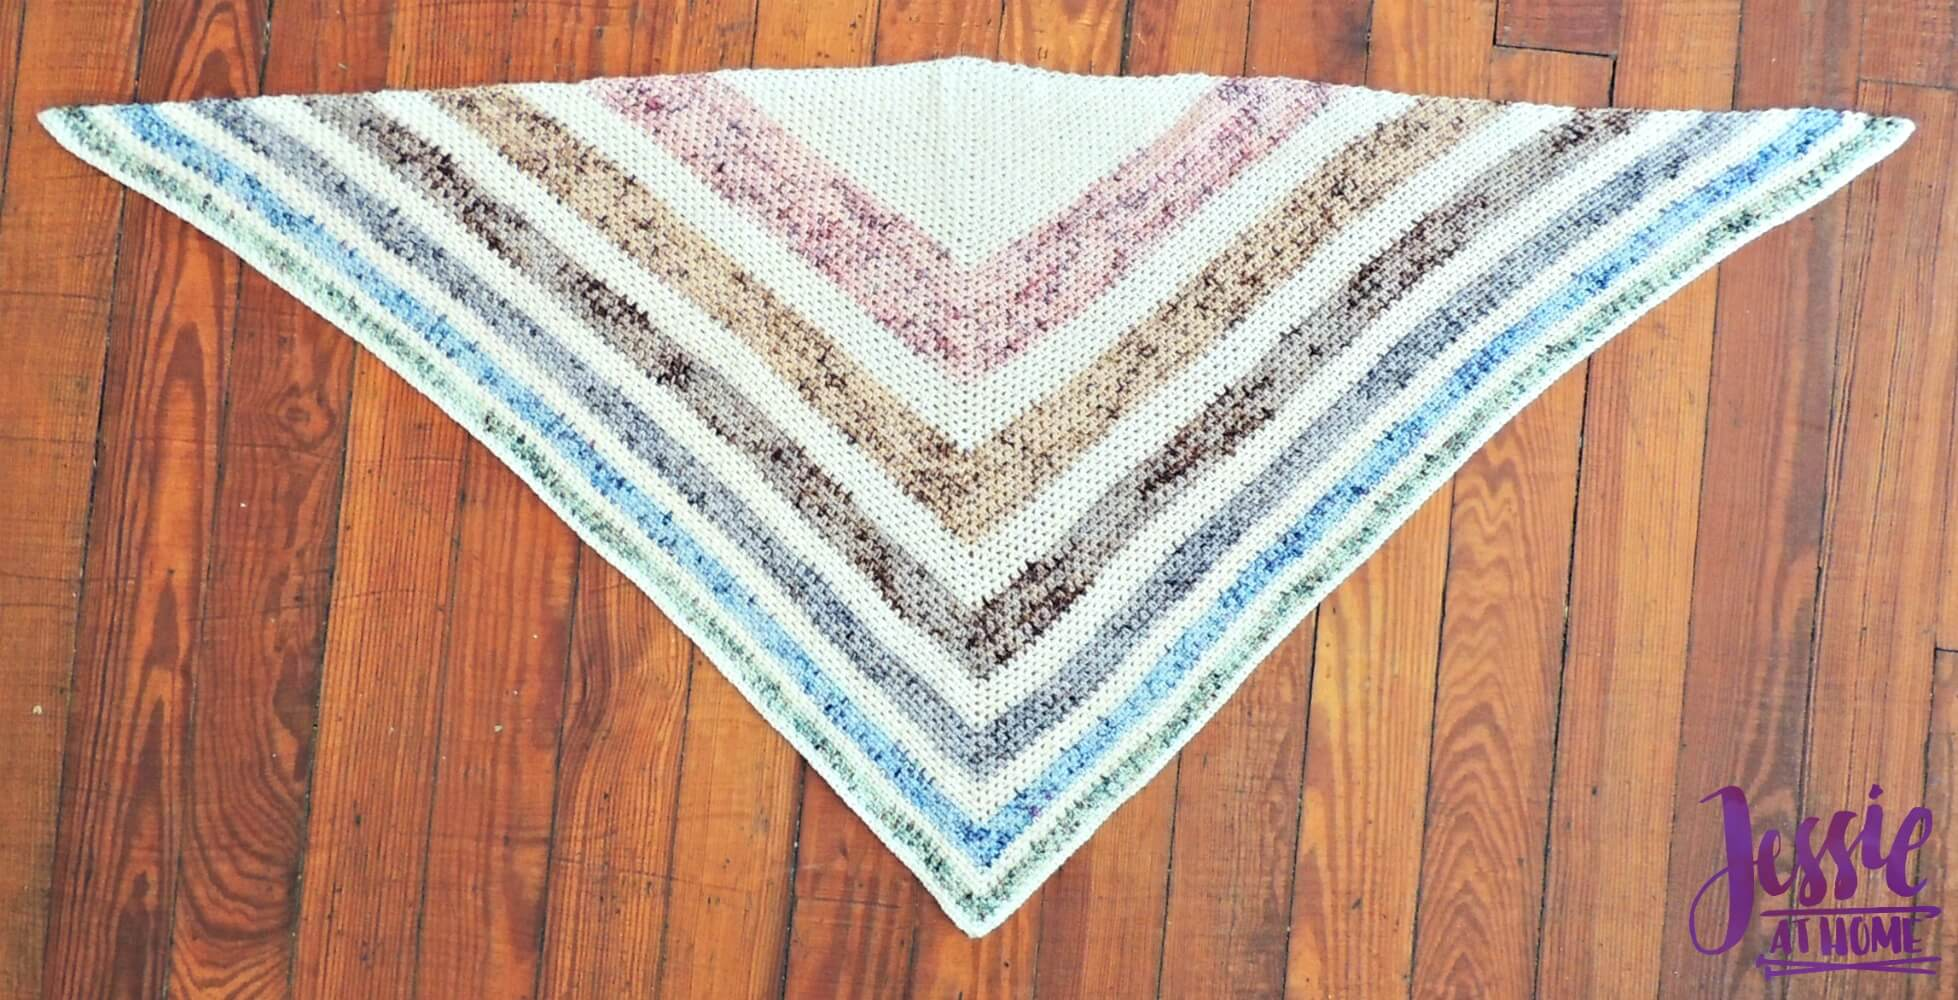 Tea Time - free crochet pattern by Jessie At Home - 4